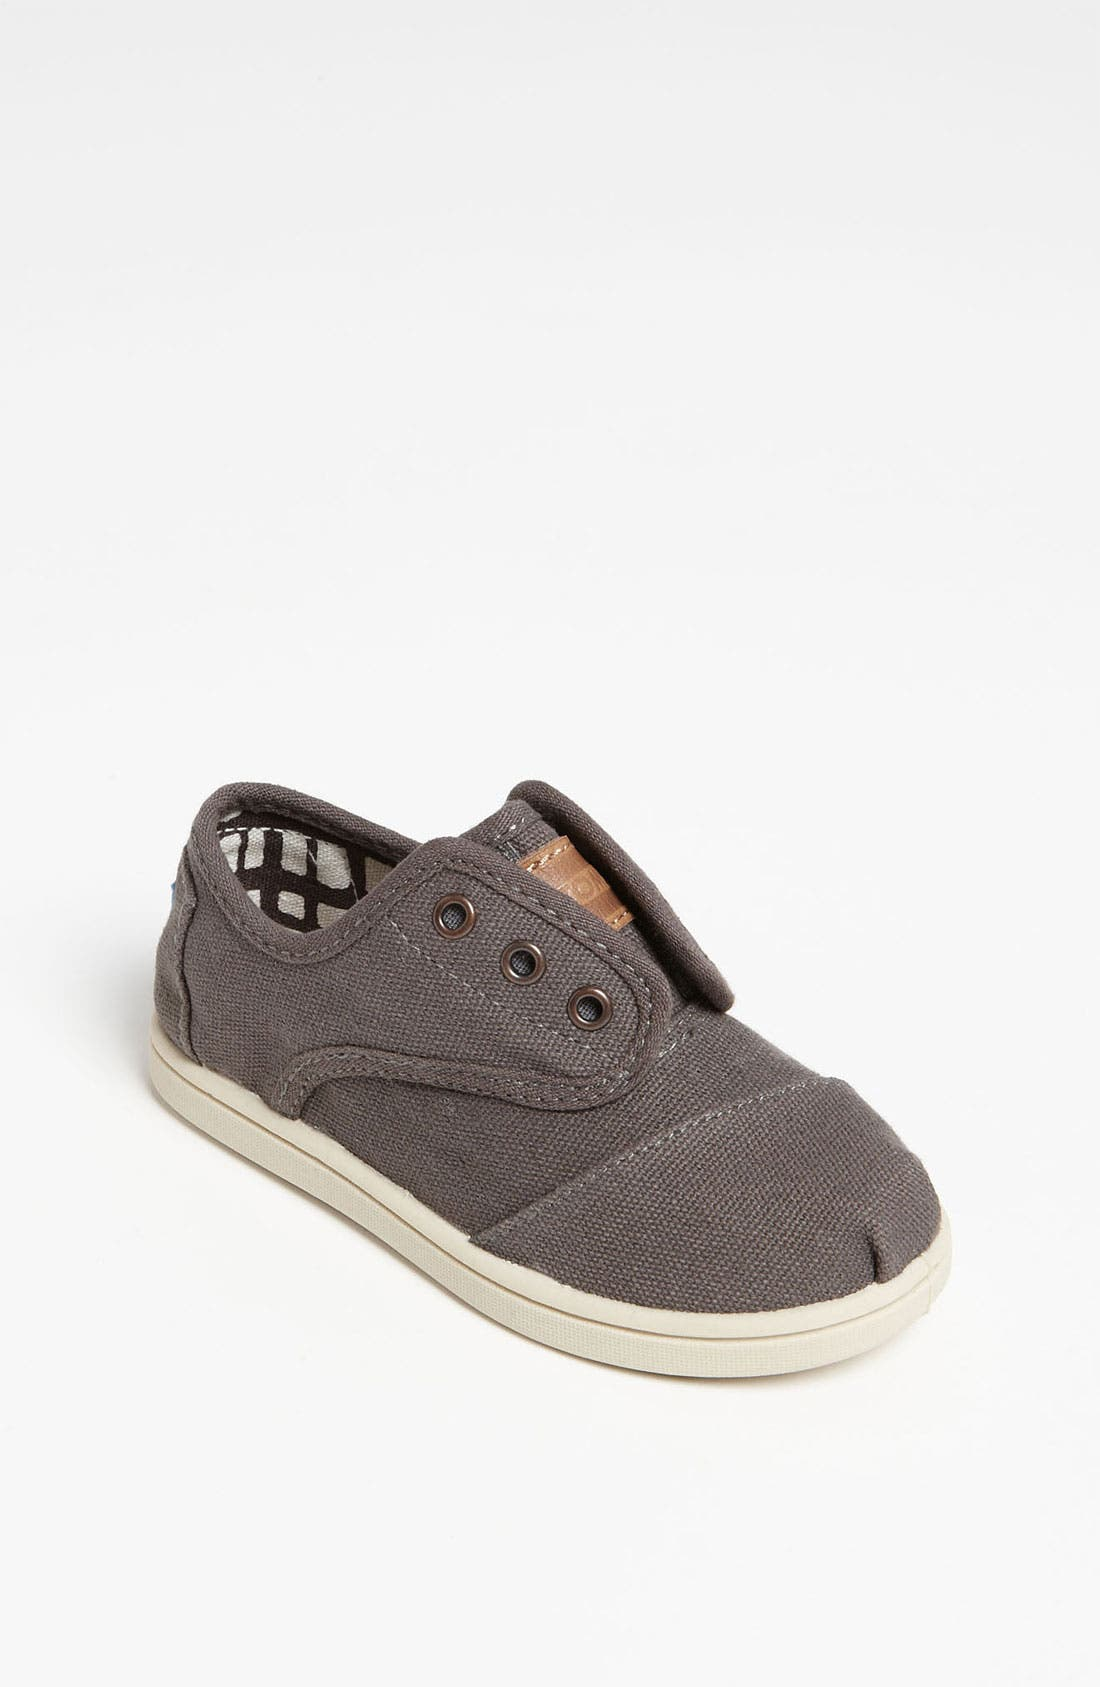 Alternate Image 1 Selected - TOMS 'Cordones - Tiny' Canvas Slip-On (Baby, Walker & Toddler)